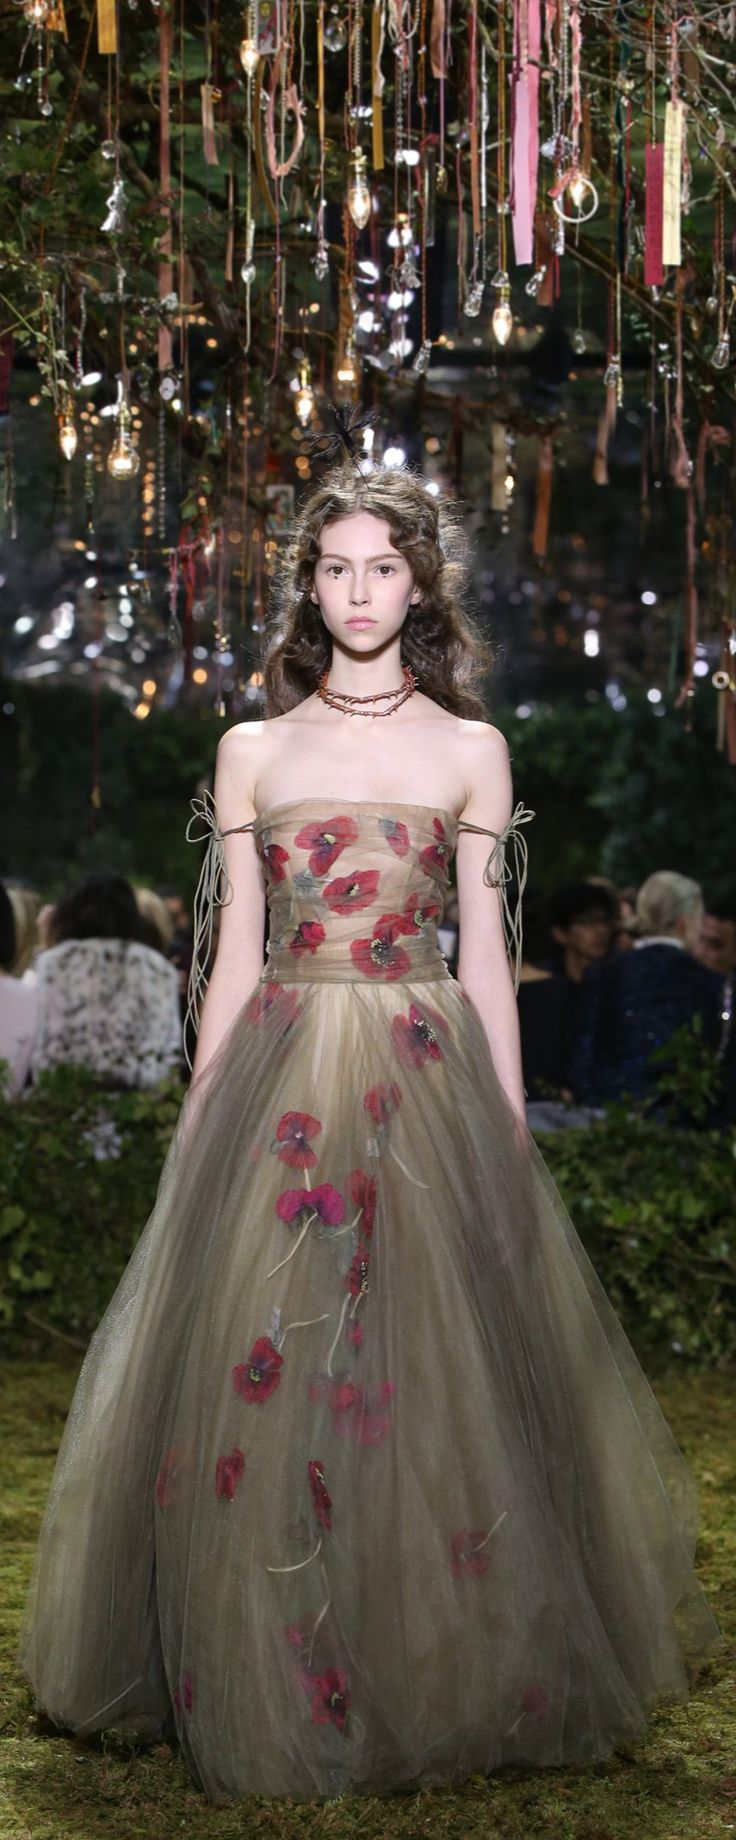 "Christian Dior Official pictures, S/S 2017 - Couture - ""Mémoire d'Été"" - Sage, cactus and olive green dégradé layered tulle dress with herbal-inspired poppy embroidery. Angry dragonfly. - http://www.orientpalms.com/Christian-Dior-6609"